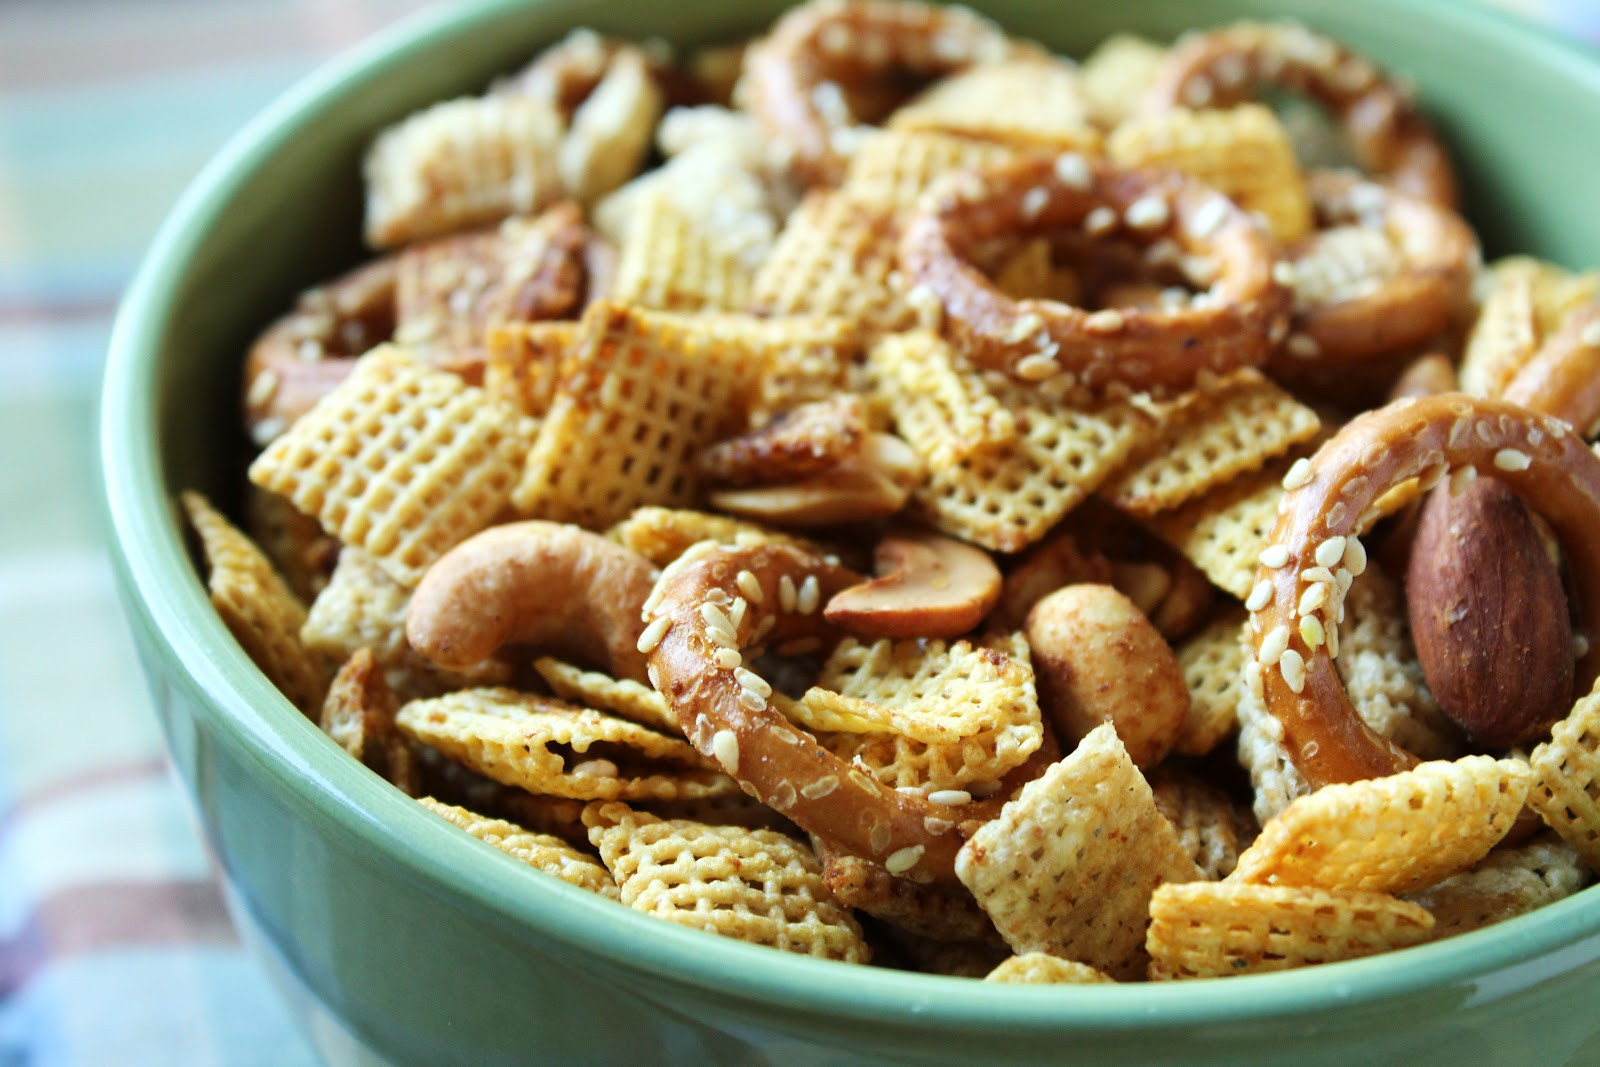 Gluten Free Chex Recipes  Delicious as it Looks Recipe for Gluten Free Chex Mix